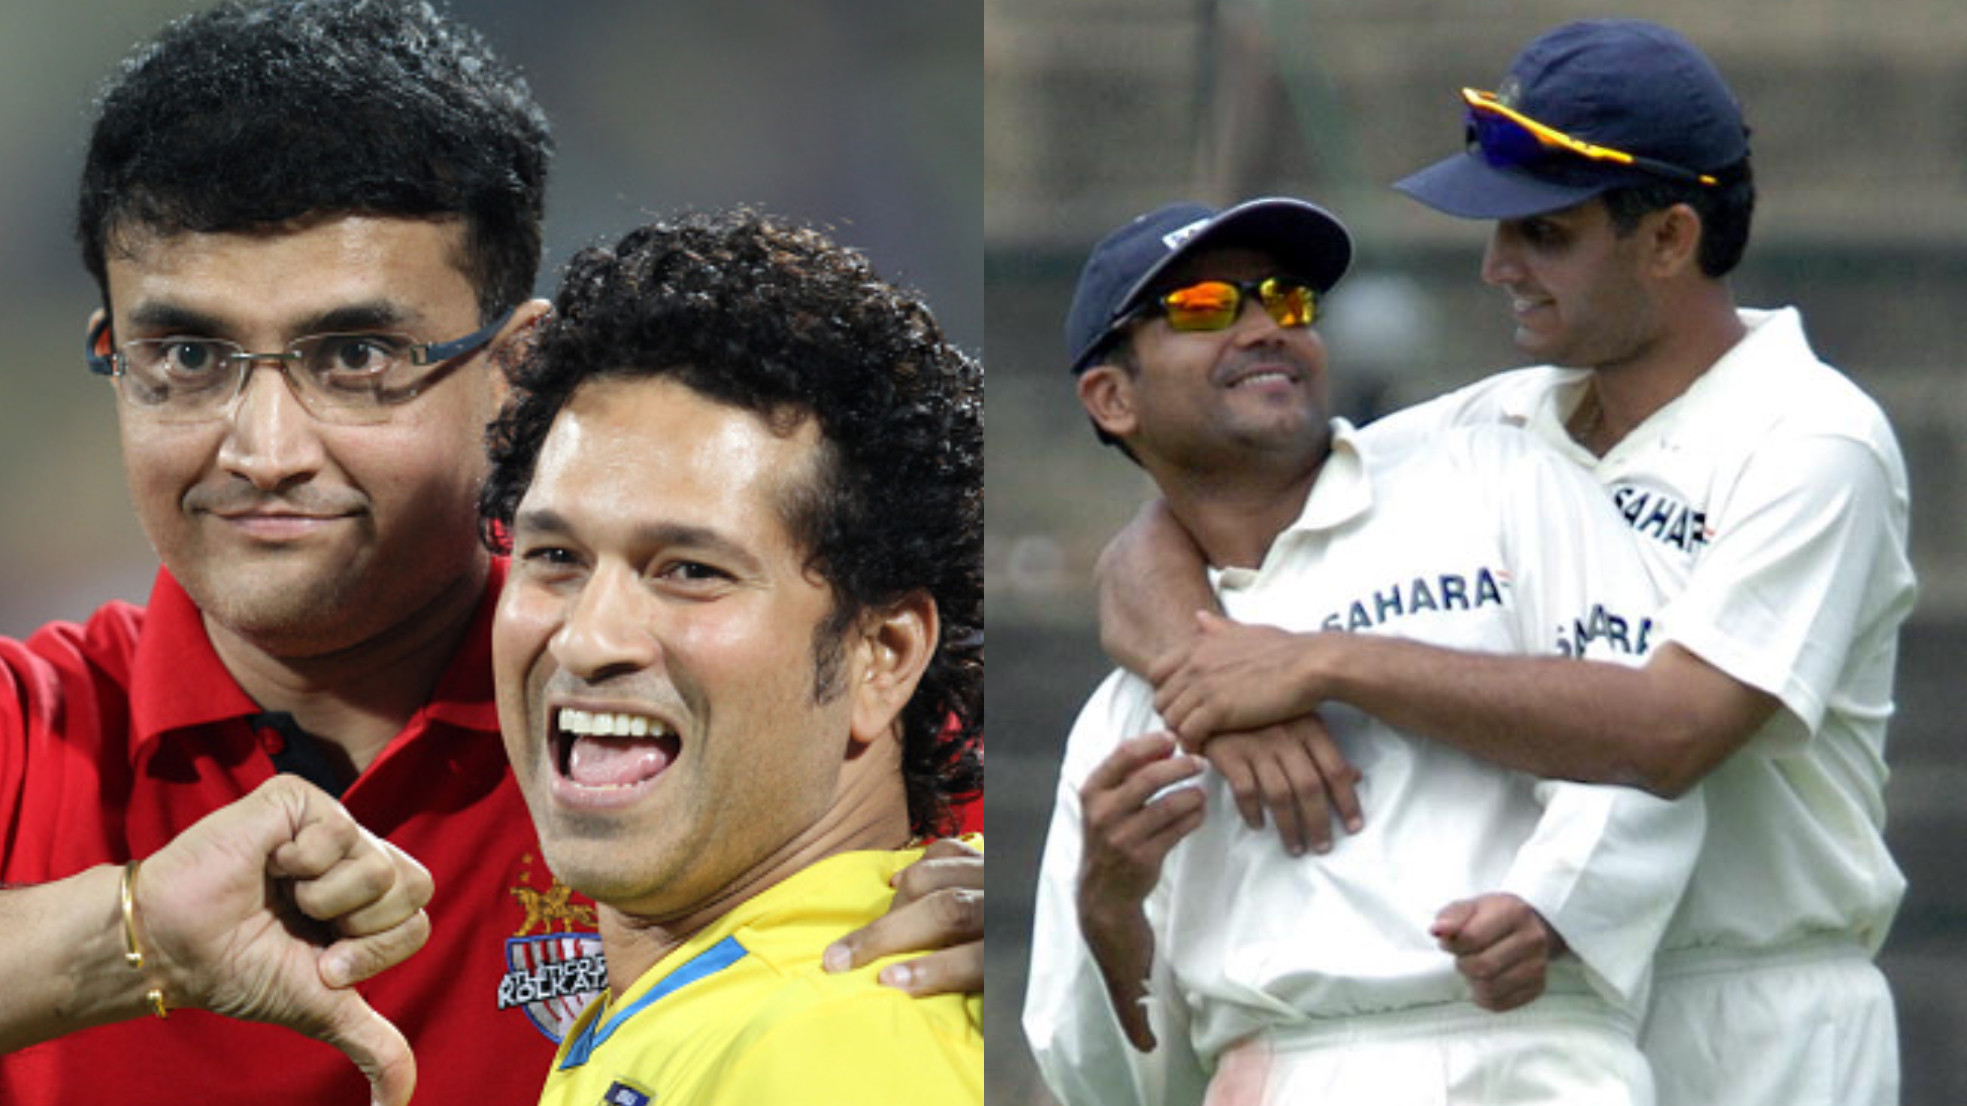 Sourav Ganguly celebrates his 49th birthday; gets wishes from the Indian cricket fraternity